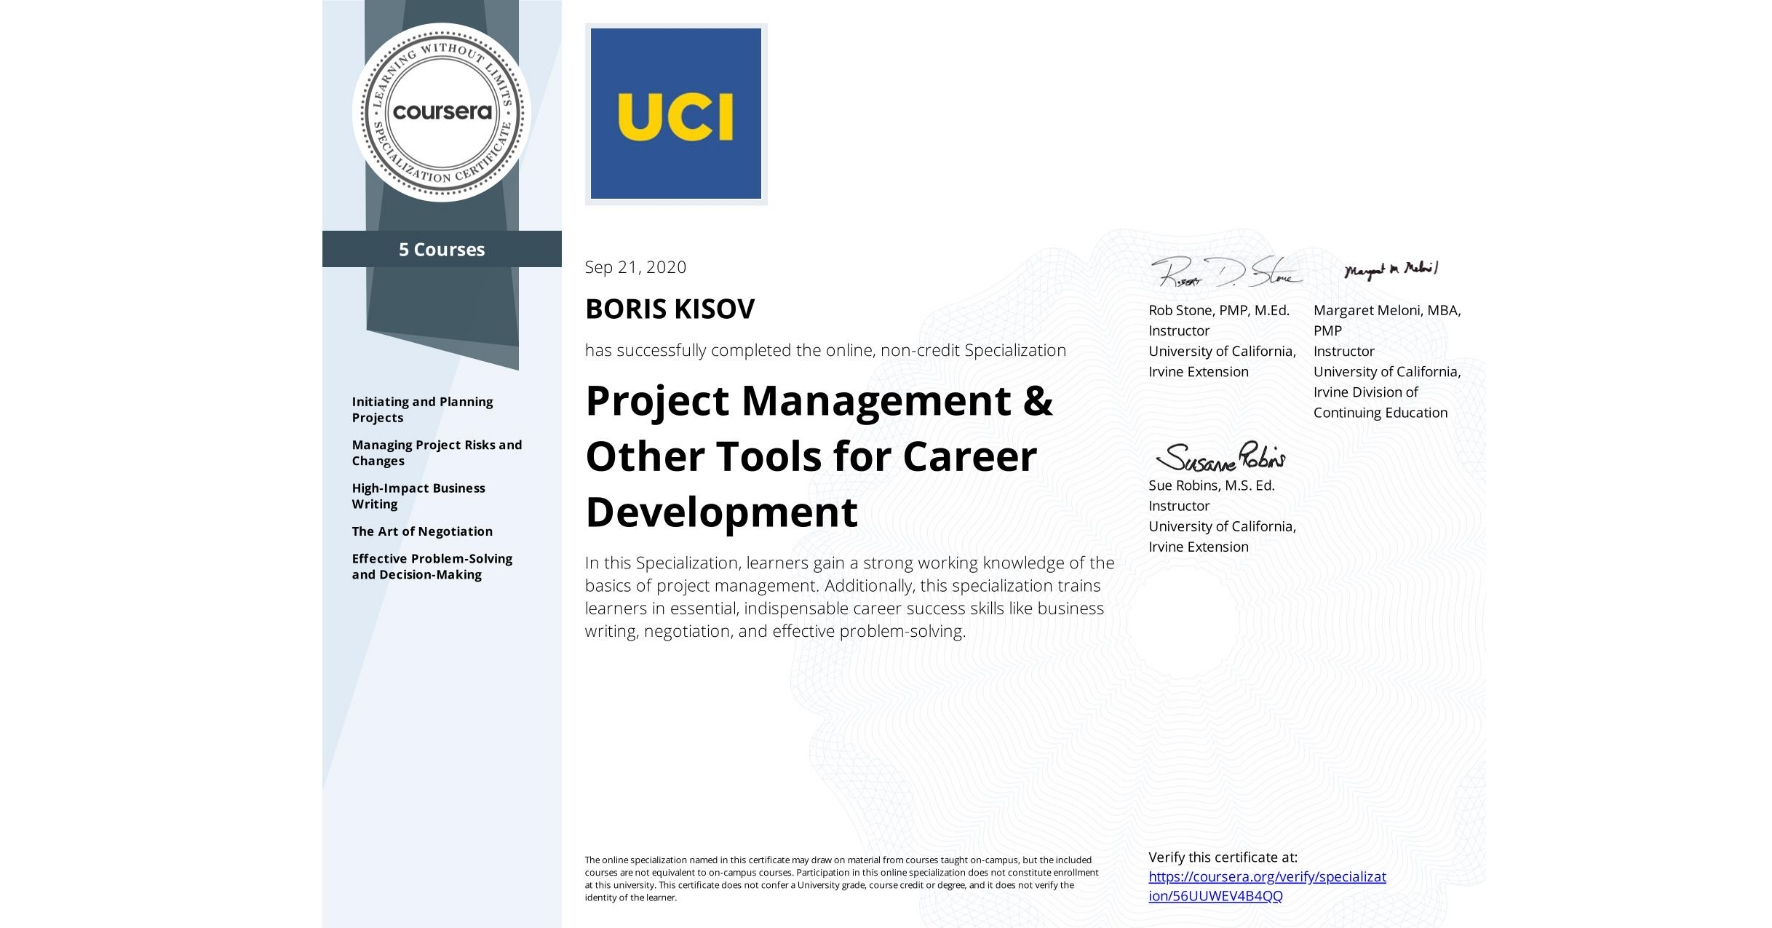 View certificate for BORIS KISOV, Project Management & Other Tools for Career Development, offered through Coursera. In this Specialization, learners gain a strong working knowledge of the basics of project management. Additionally, this specialization trains learners in essential, indispensable career success skills like business writing, negotiation, and effective problem-solving.